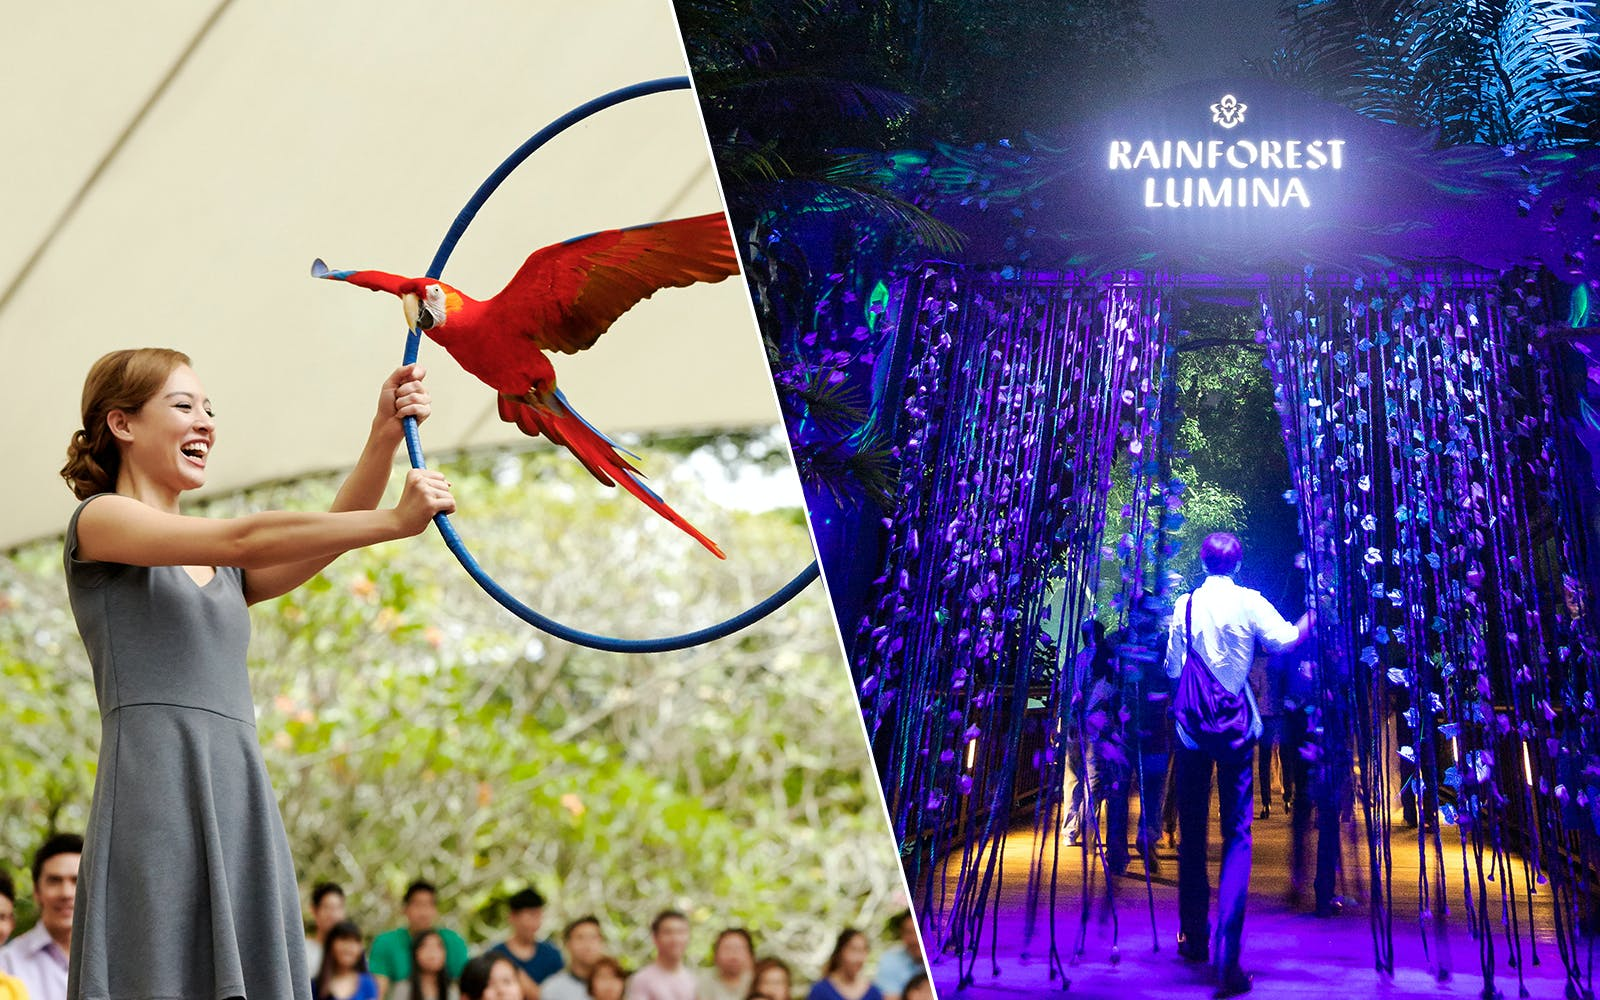 Super Saver Combo: Rainforest Lumina + Jurong Bird Park